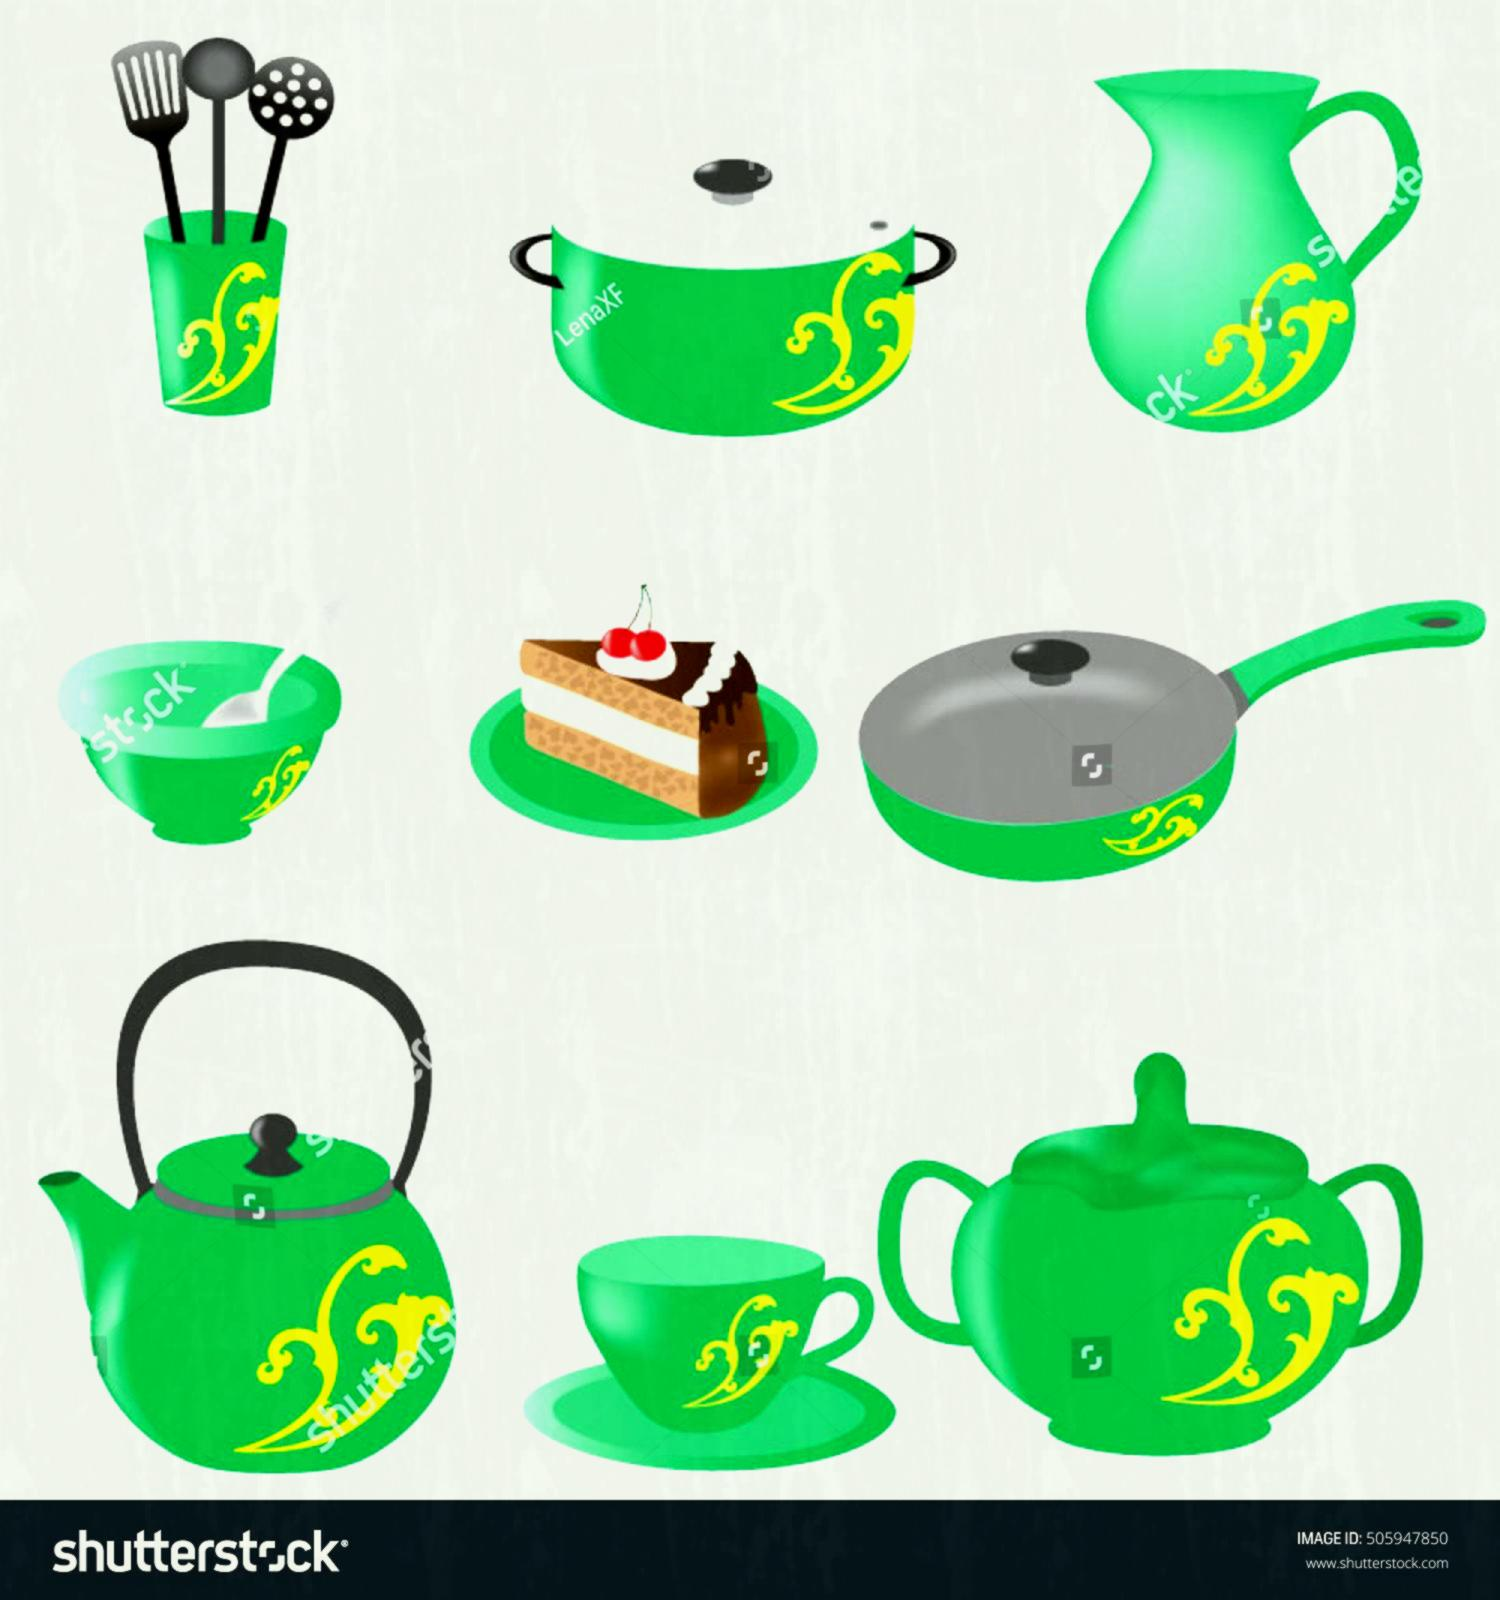 1500x1600 Hanging Cooking Utensils Clipart Kitchen Tools Black And White Pie